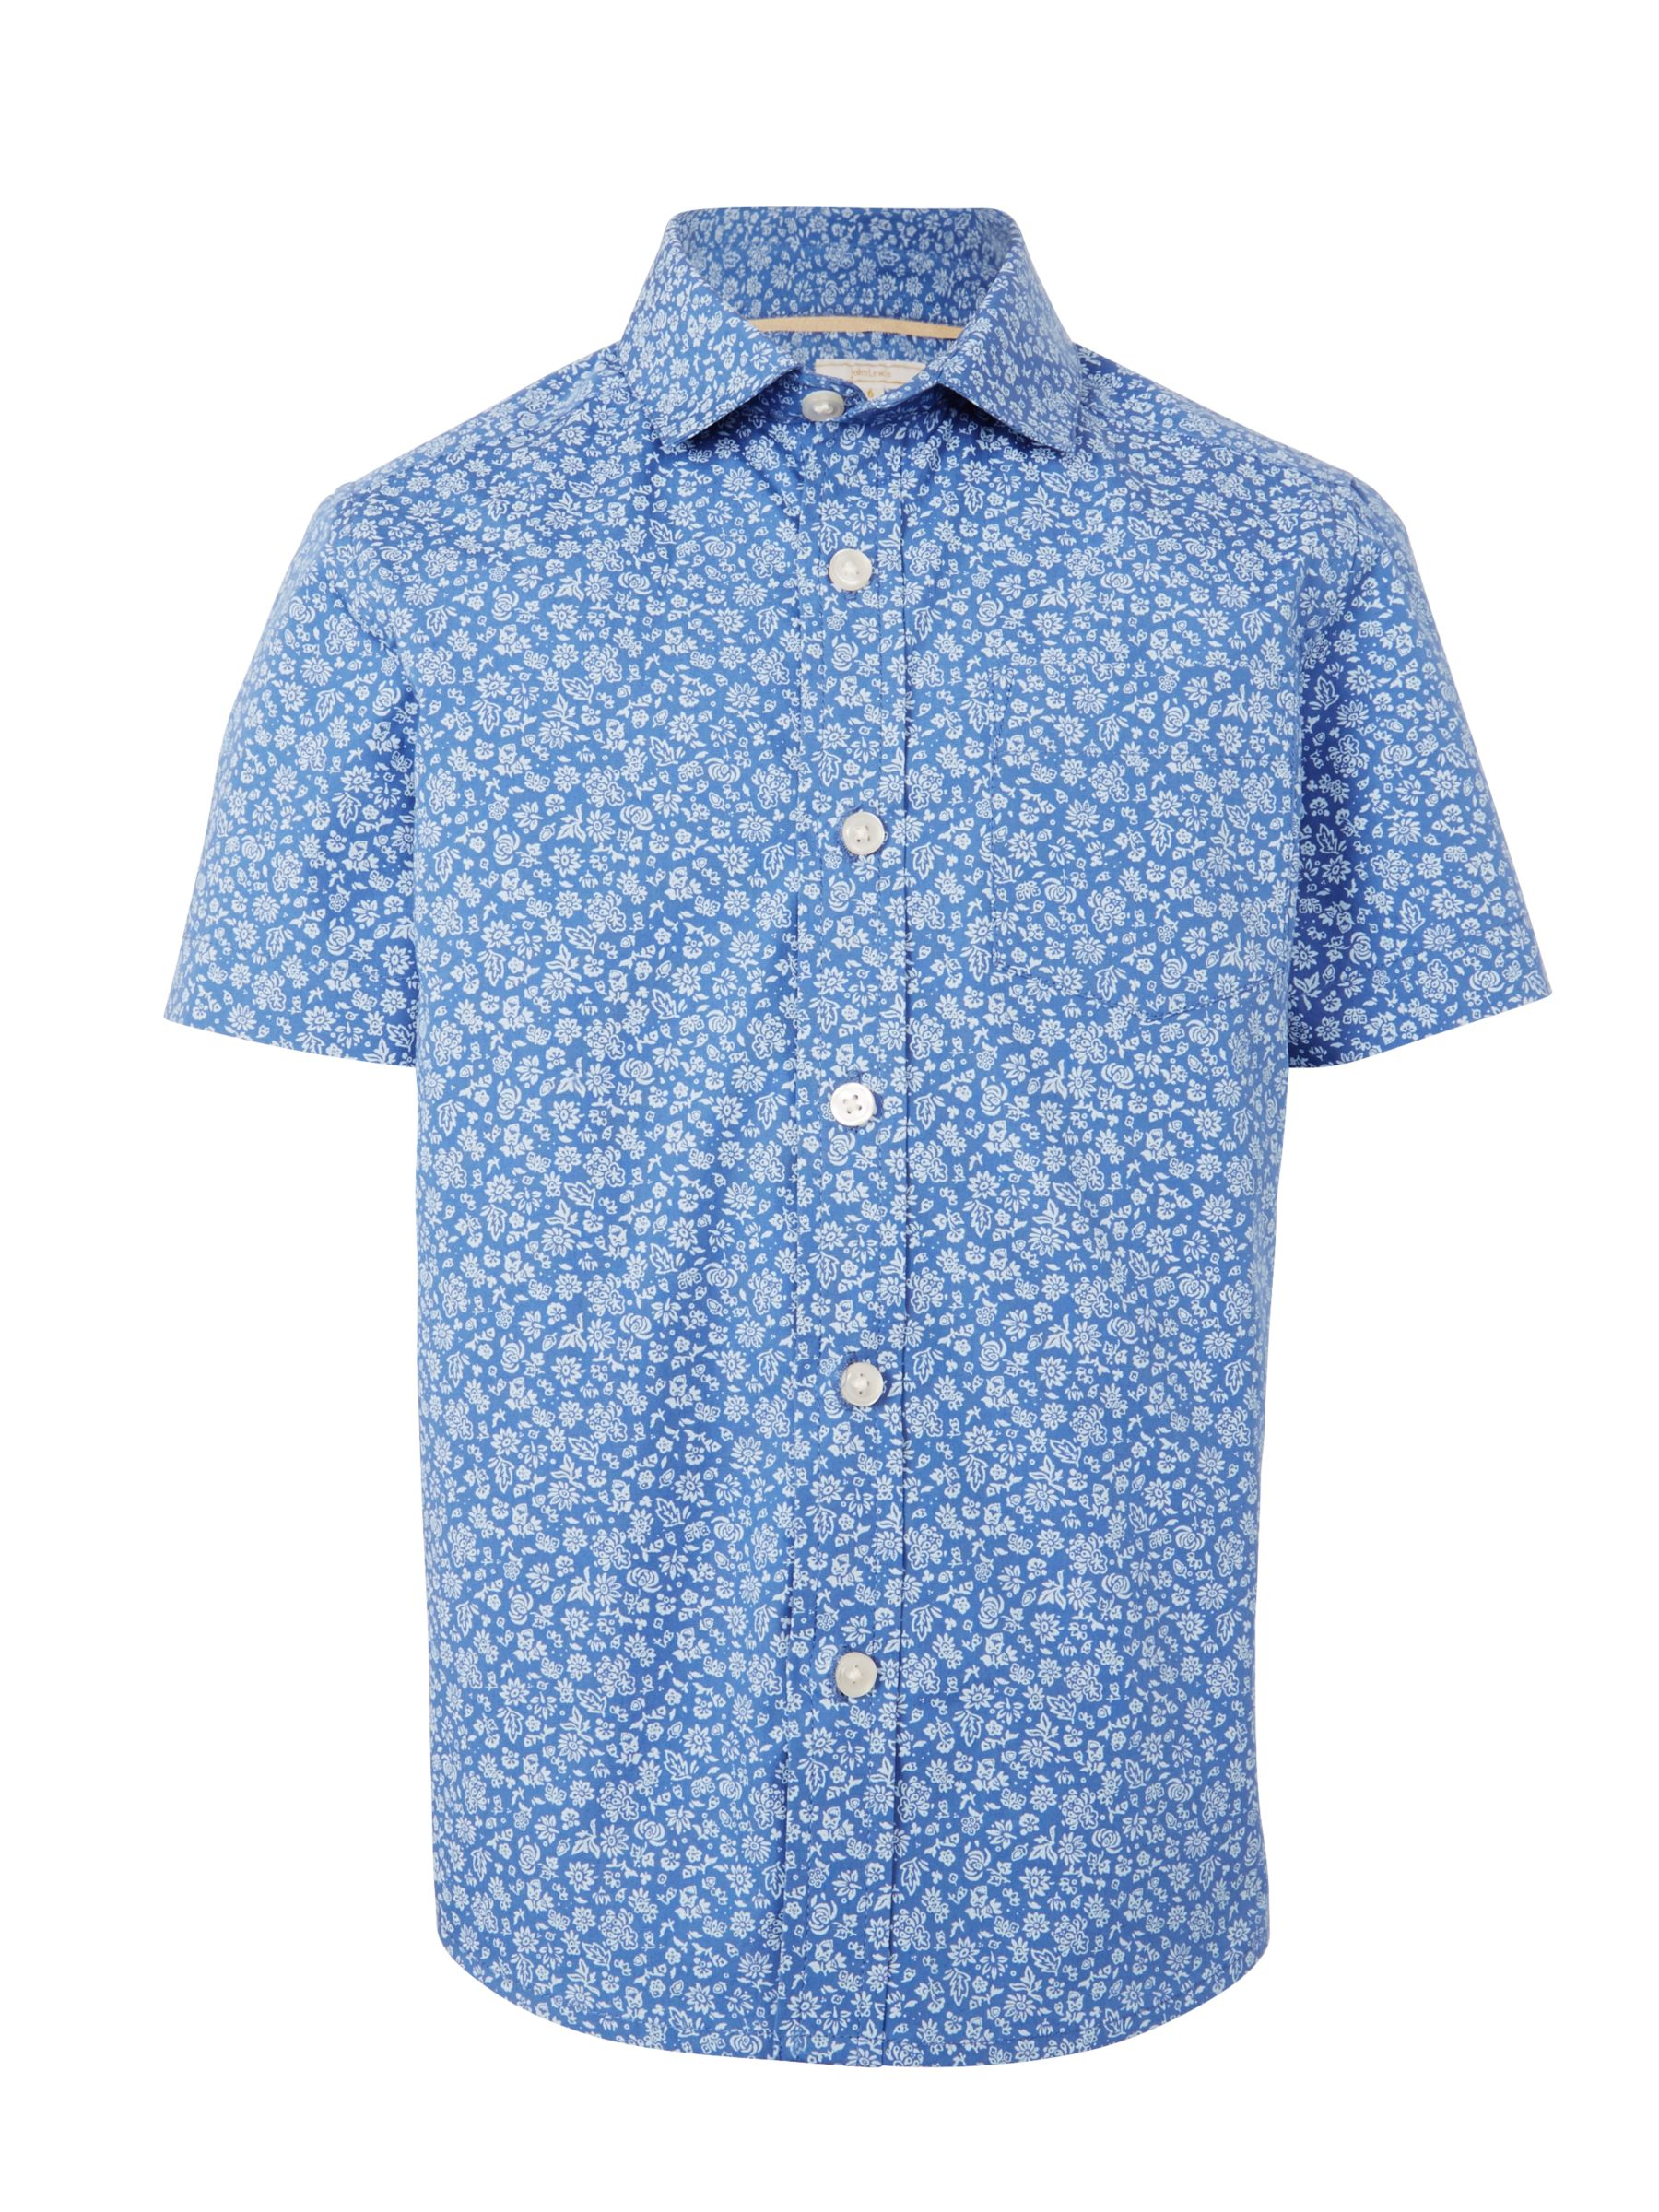 John Lewis Heirloom Collection John Lewis Heirloom Collection Boys' Floral Shirt, Blue/White